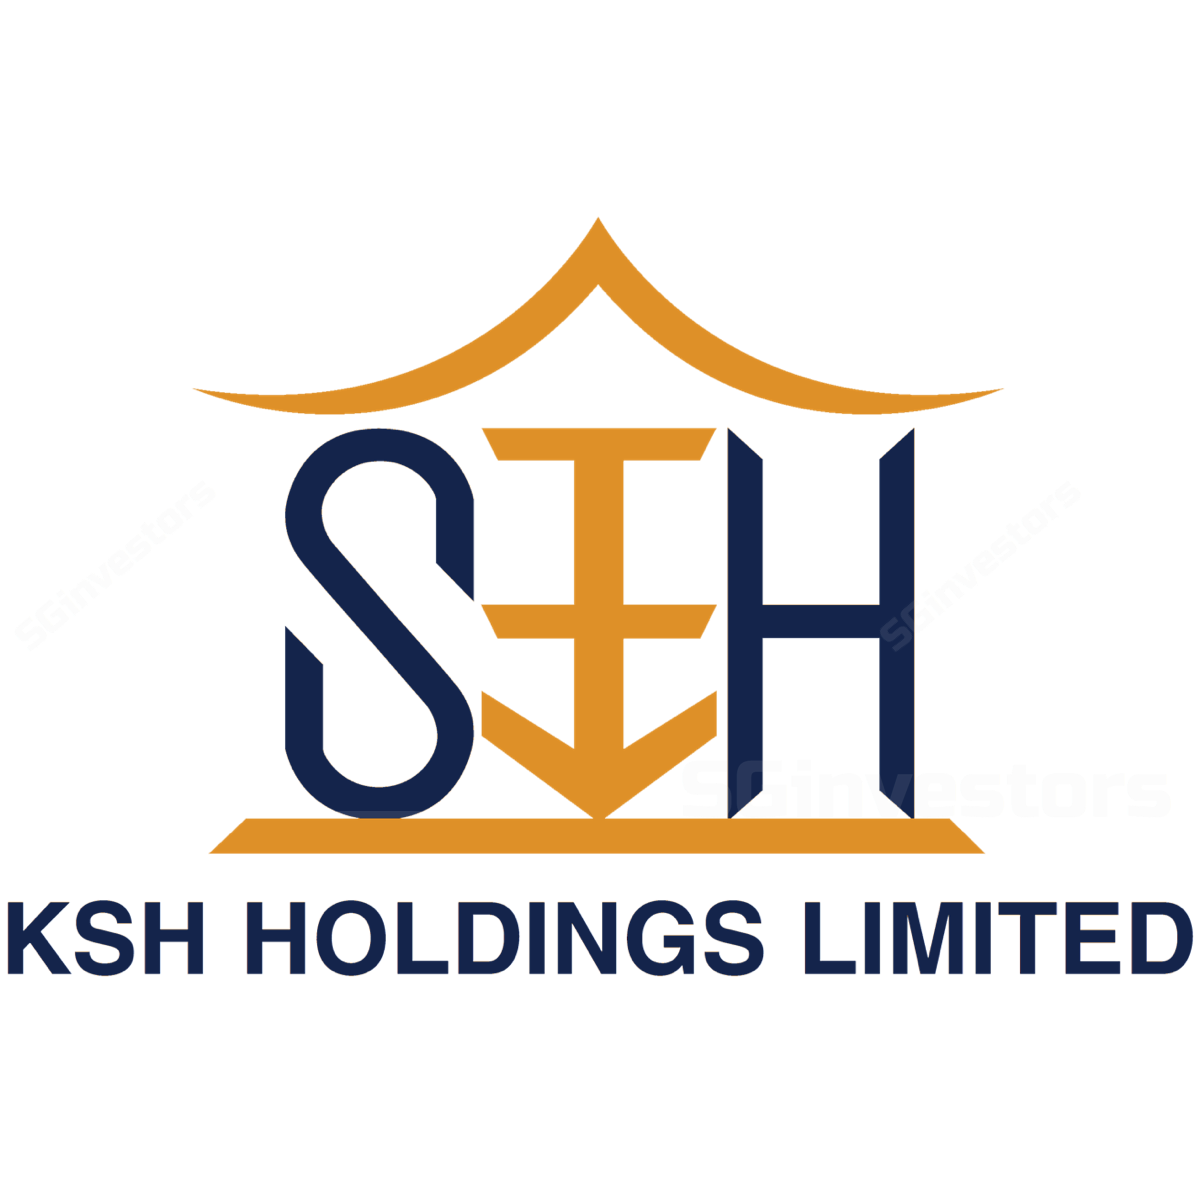 KSH Holdings (KSHH SP) - UOB Kay Hian 2017-11-06: Target Price Surpassed; Take Profit